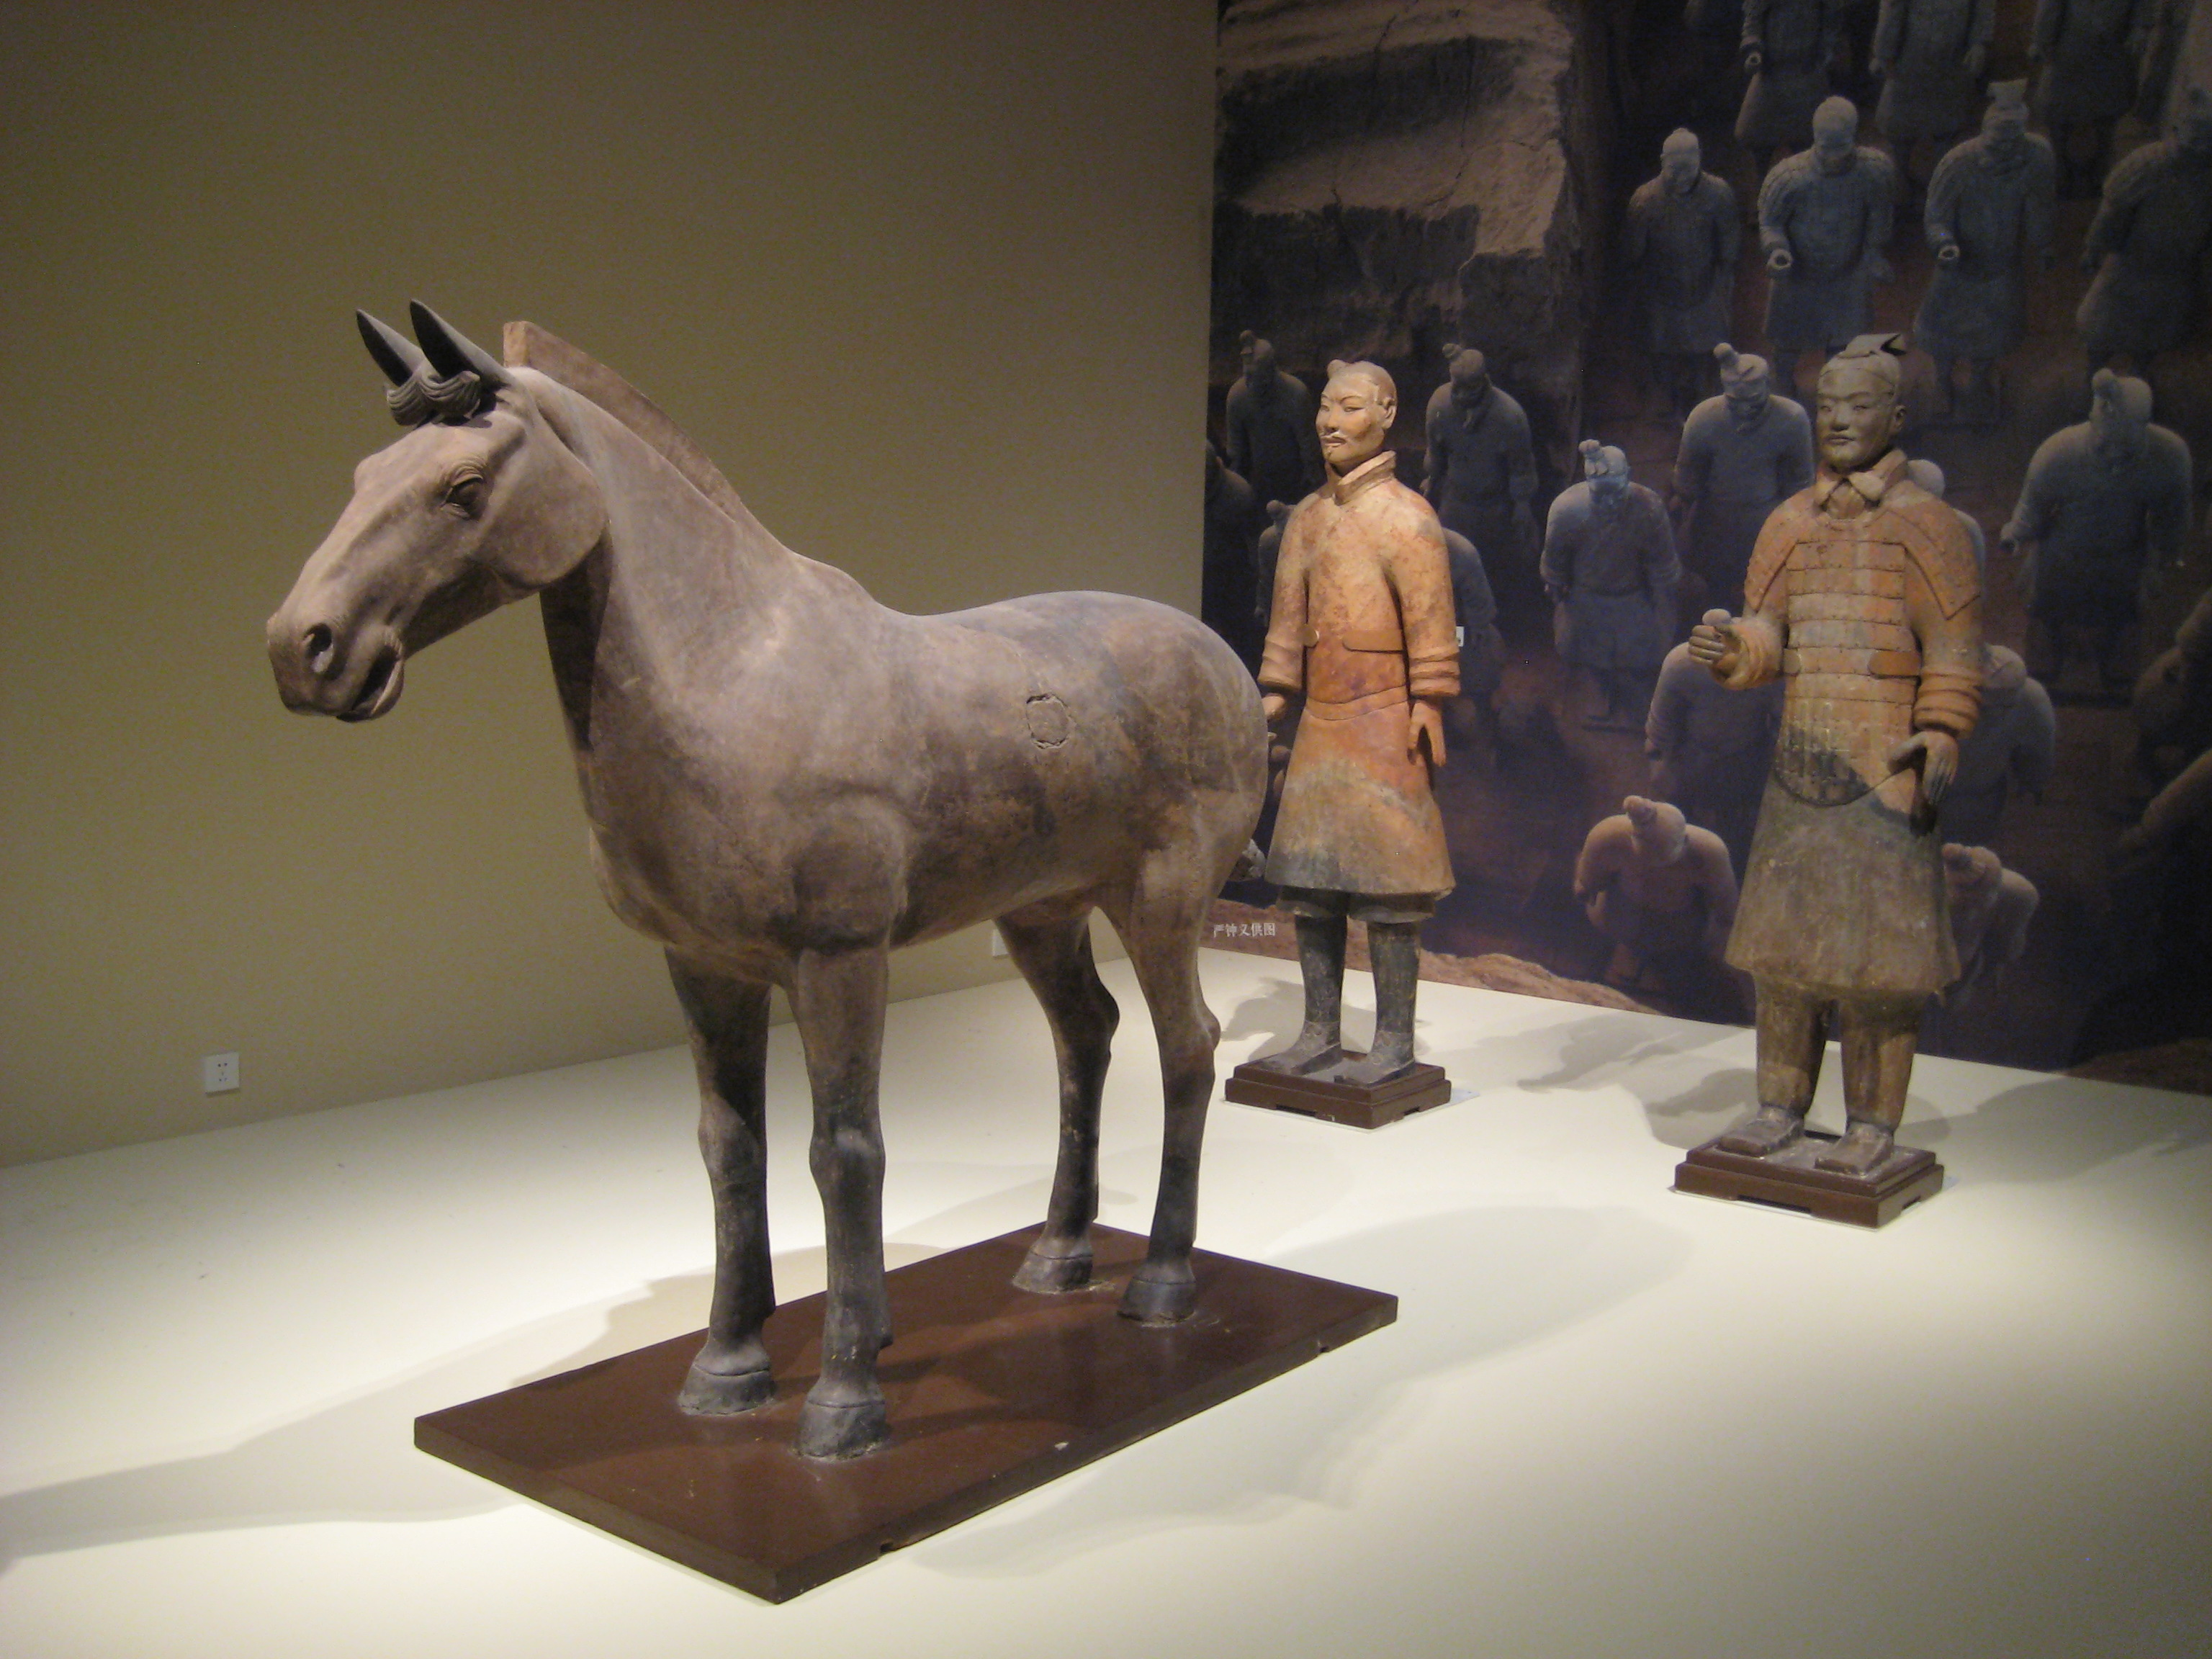 Terracotta horse and two soldiers from the Terracotta Army buried near the Mausoleum of the First Emperor of Qin, at Lintong, Shaanxi Province, 1974